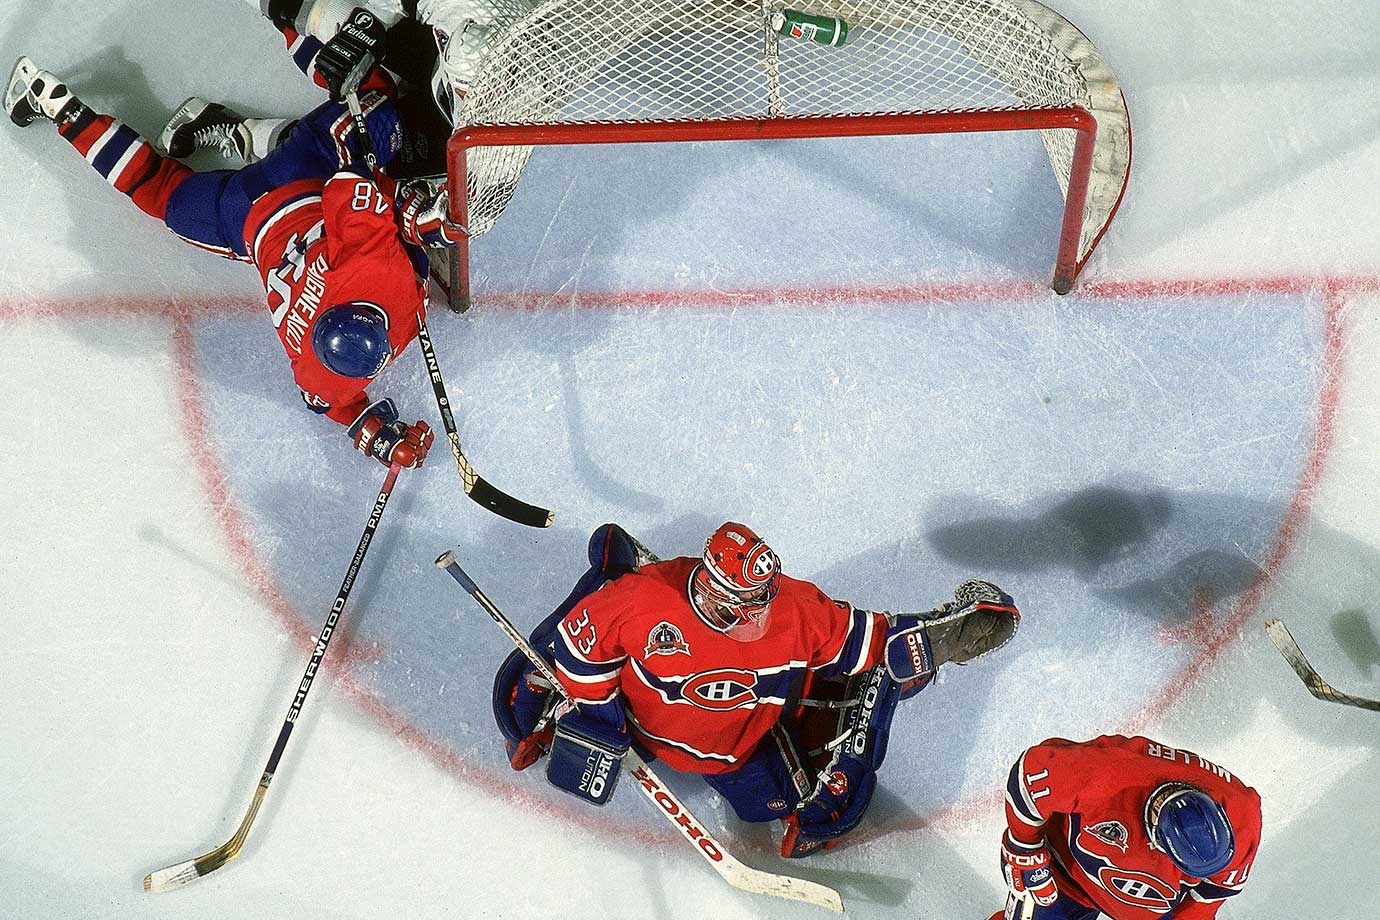 June 7, 1993 — Stanley Cup Final, Game 4 (Canadiens vs. Kings)